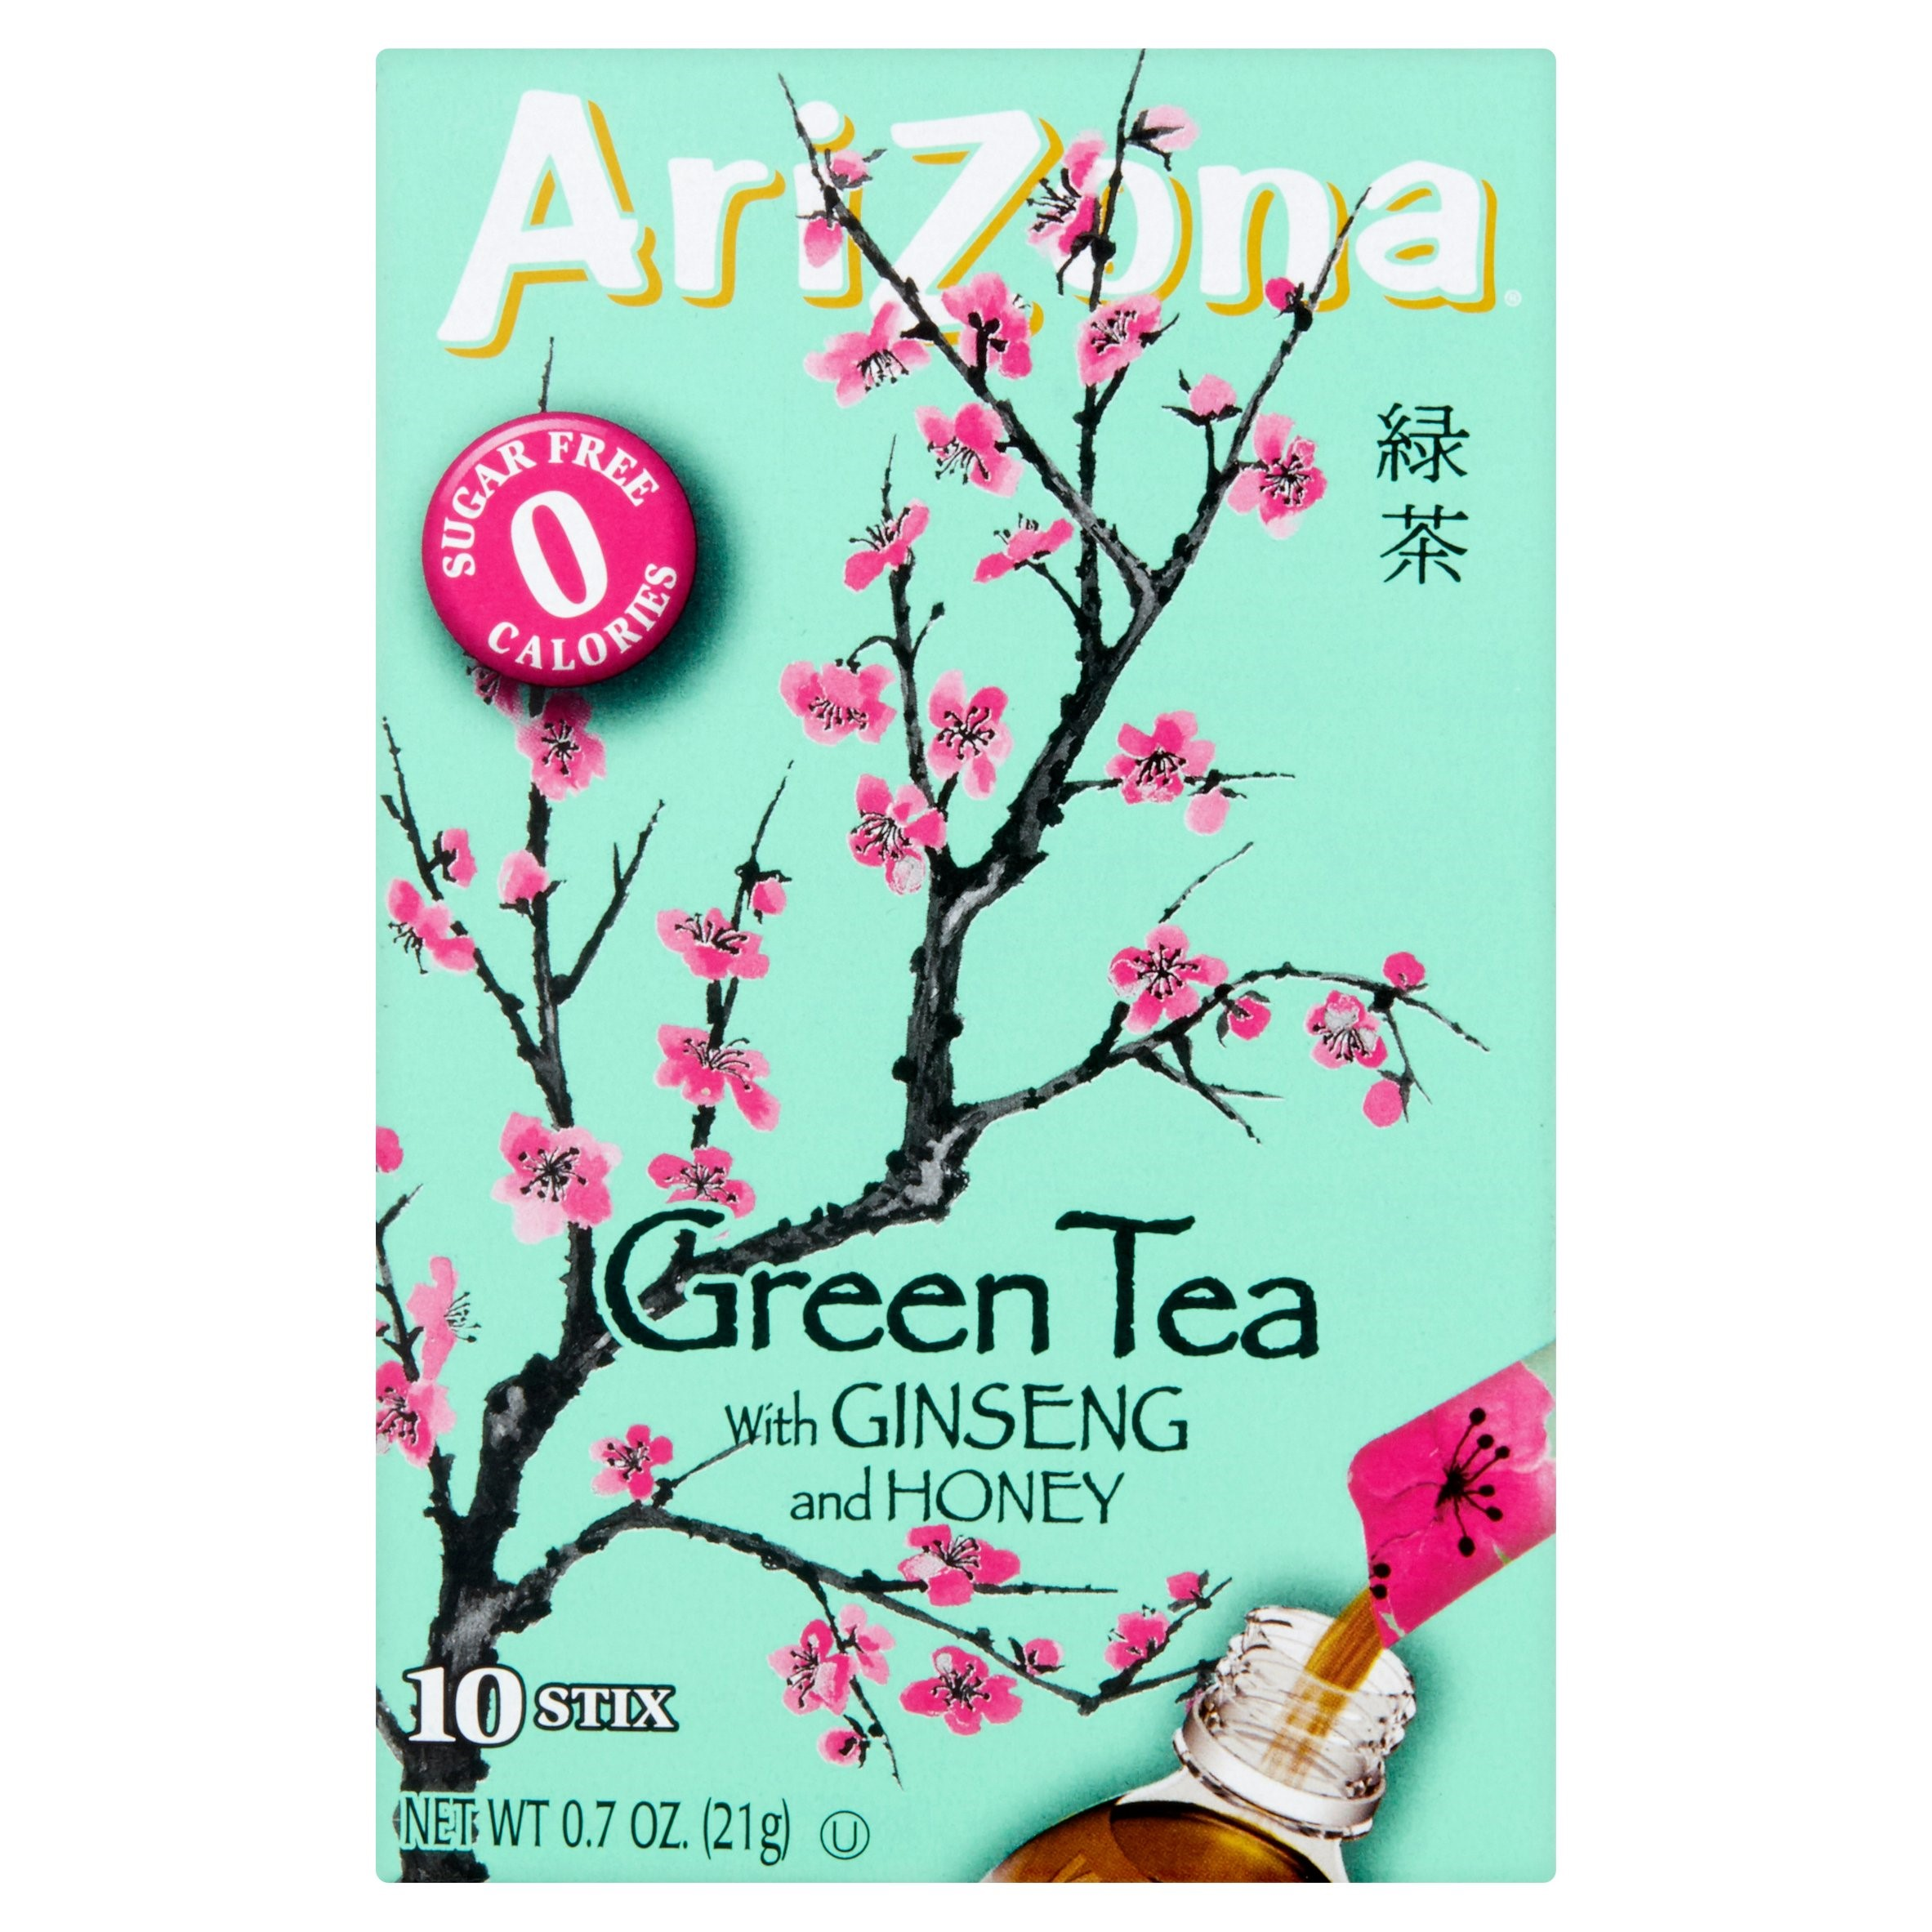 Arizona Drink Mix, Green Tea with Ginseng and Honey, .7 Oz, 10 Sticks, 1 Count